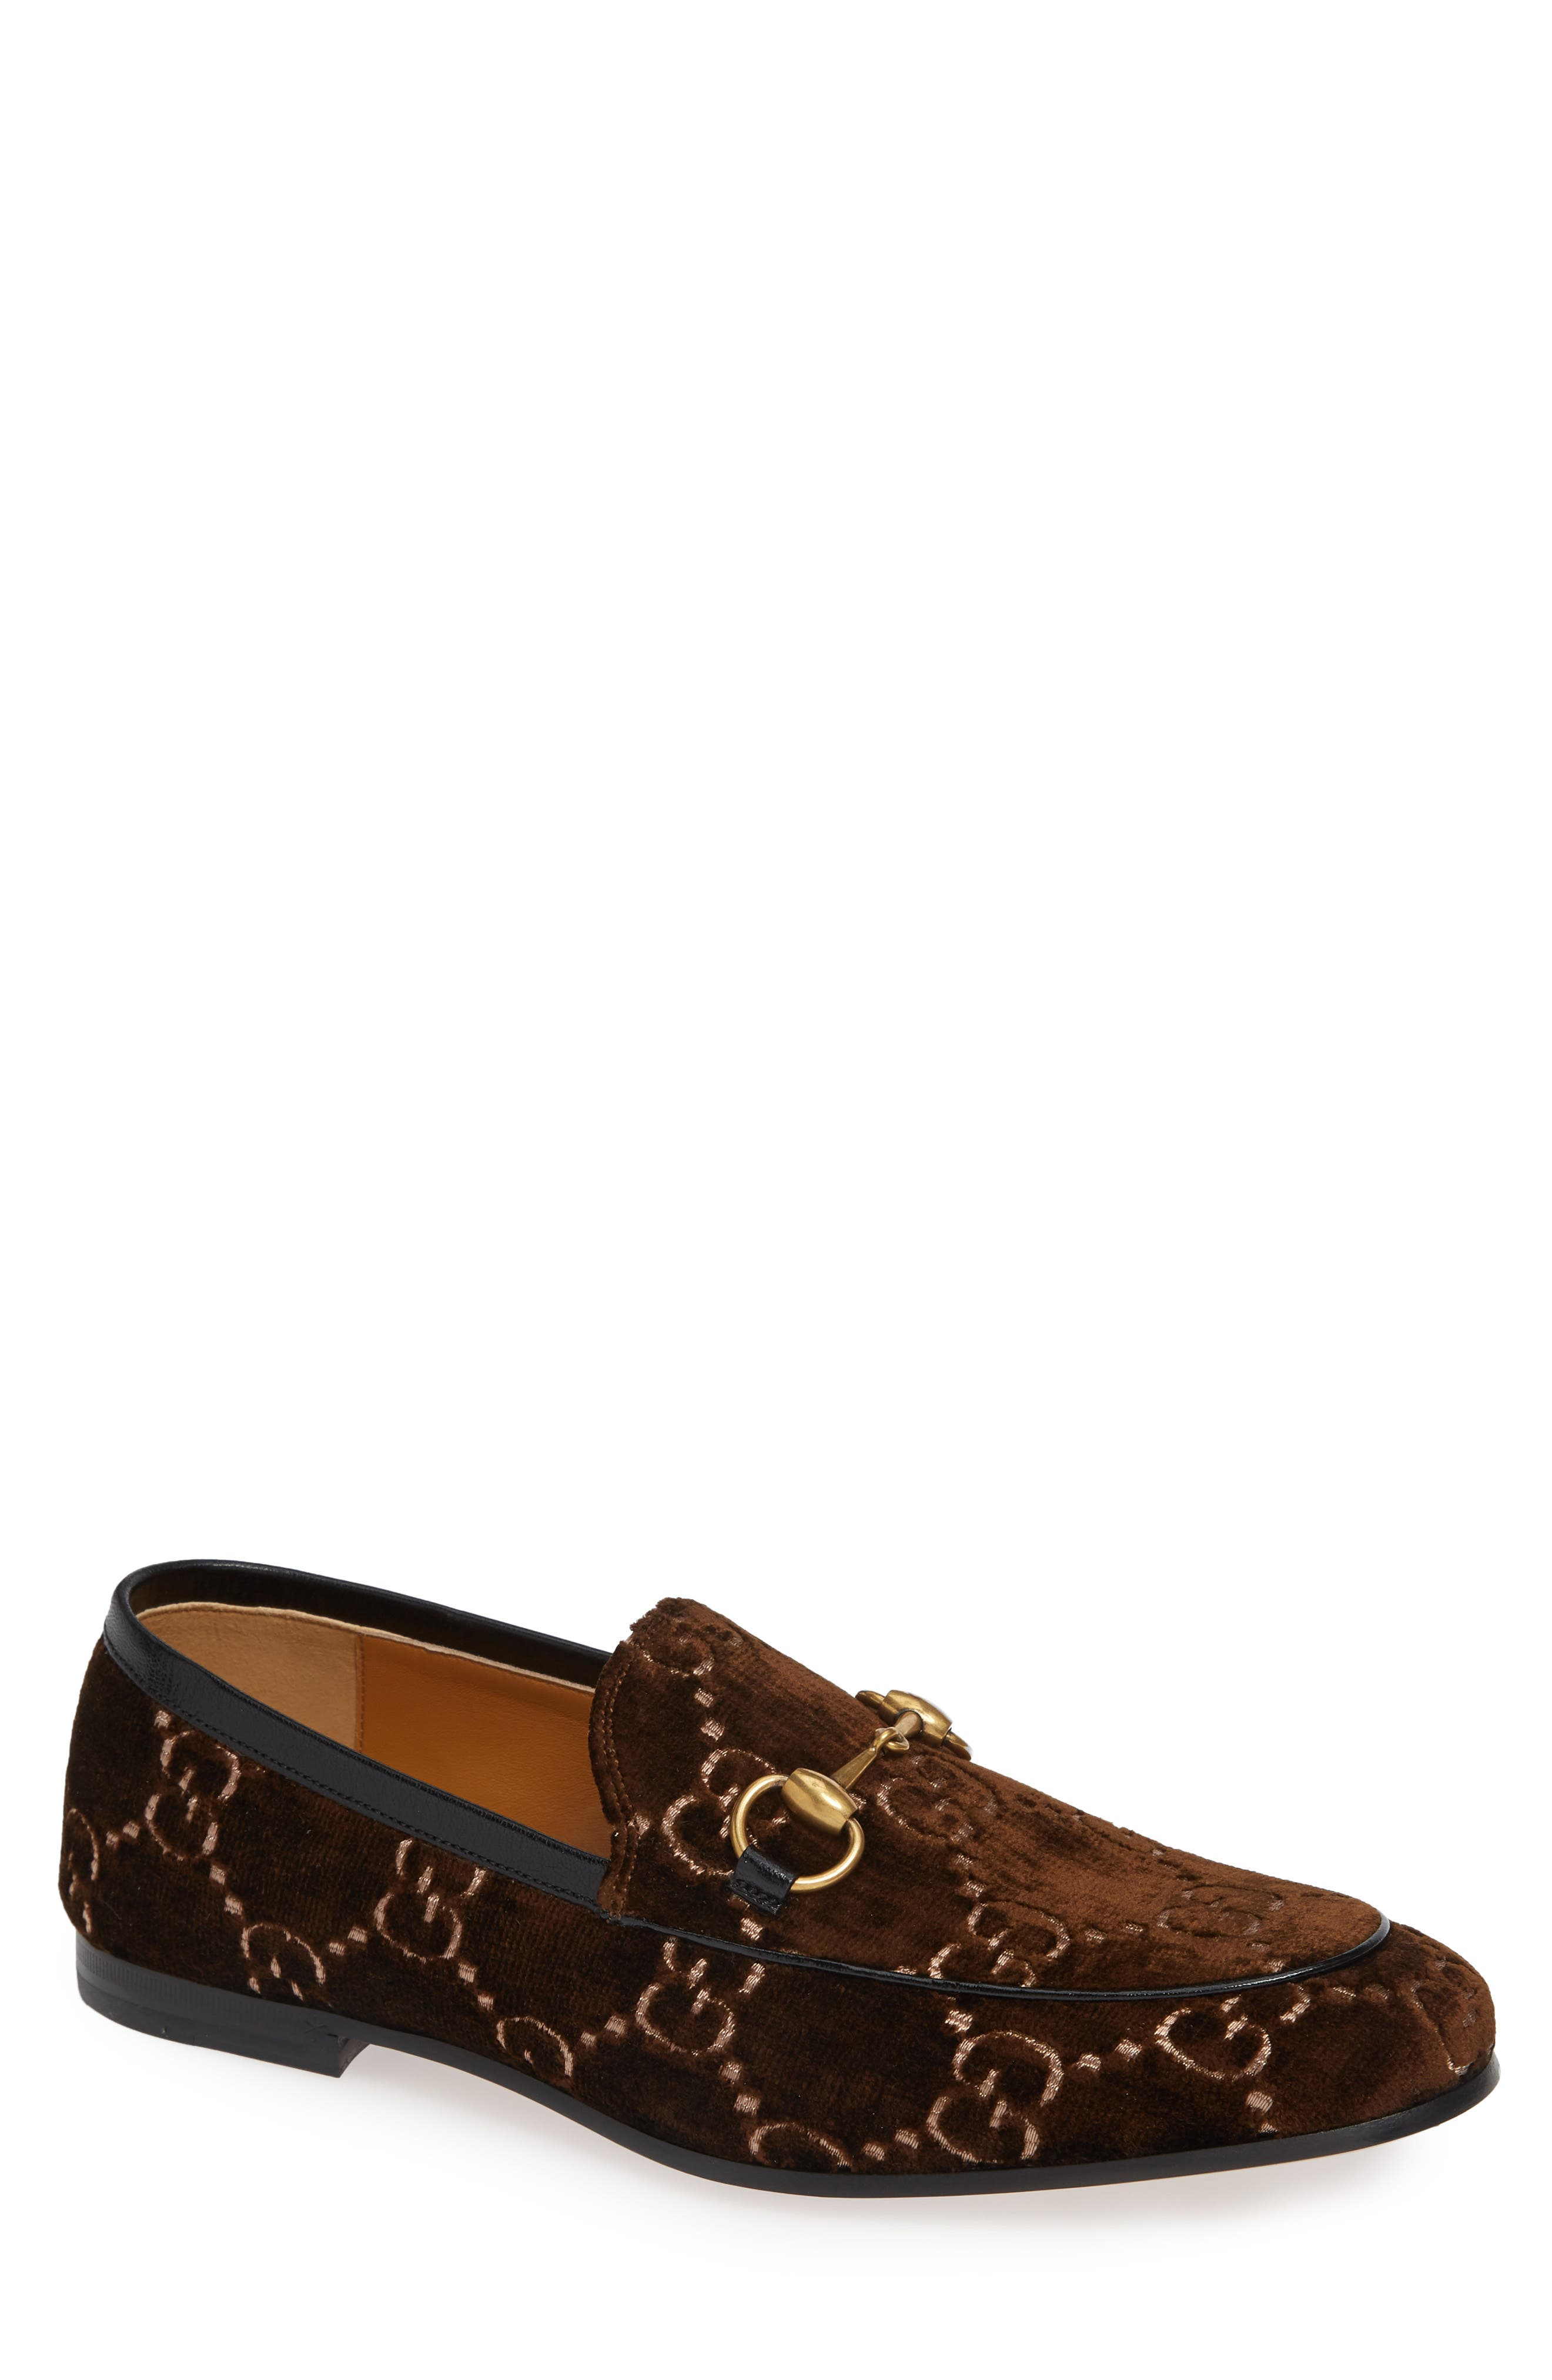 Jordaan GG Velvet Loafer,                         Main,                         color, BROWN/ NERO